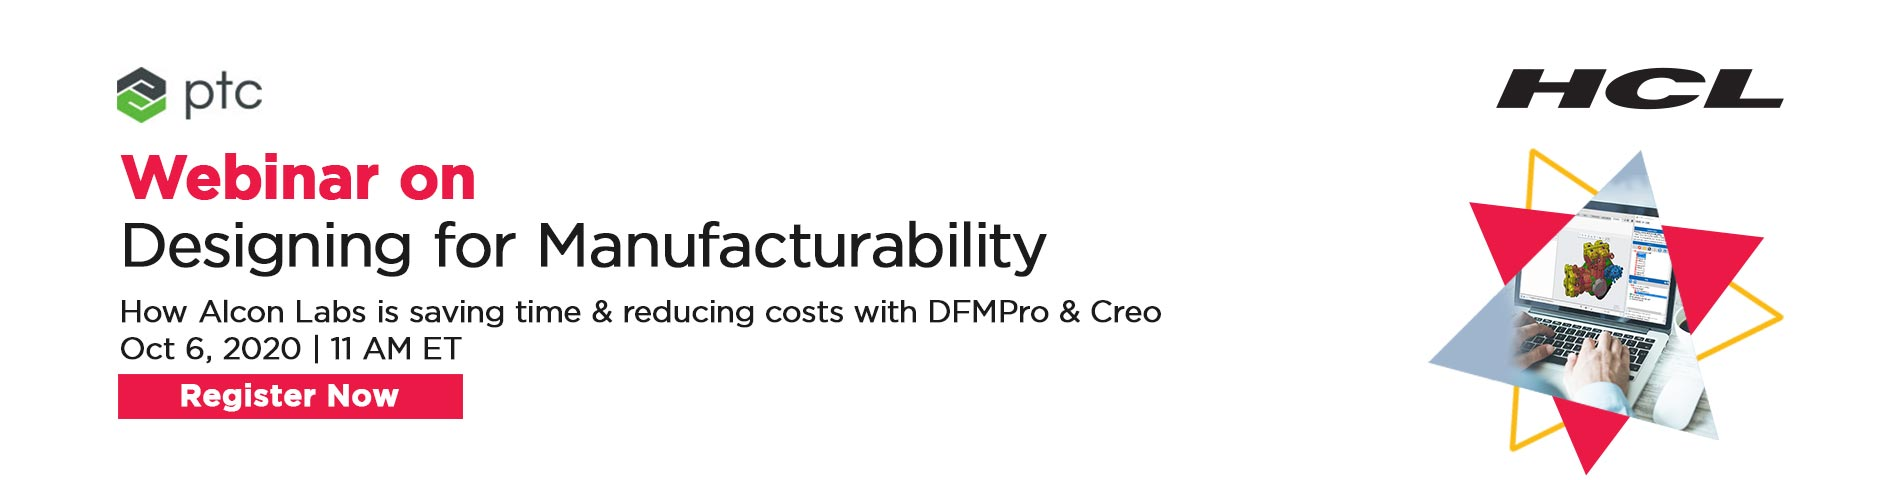 PTC HCL and Alcon Labs Webinar on Design for Manufacturability